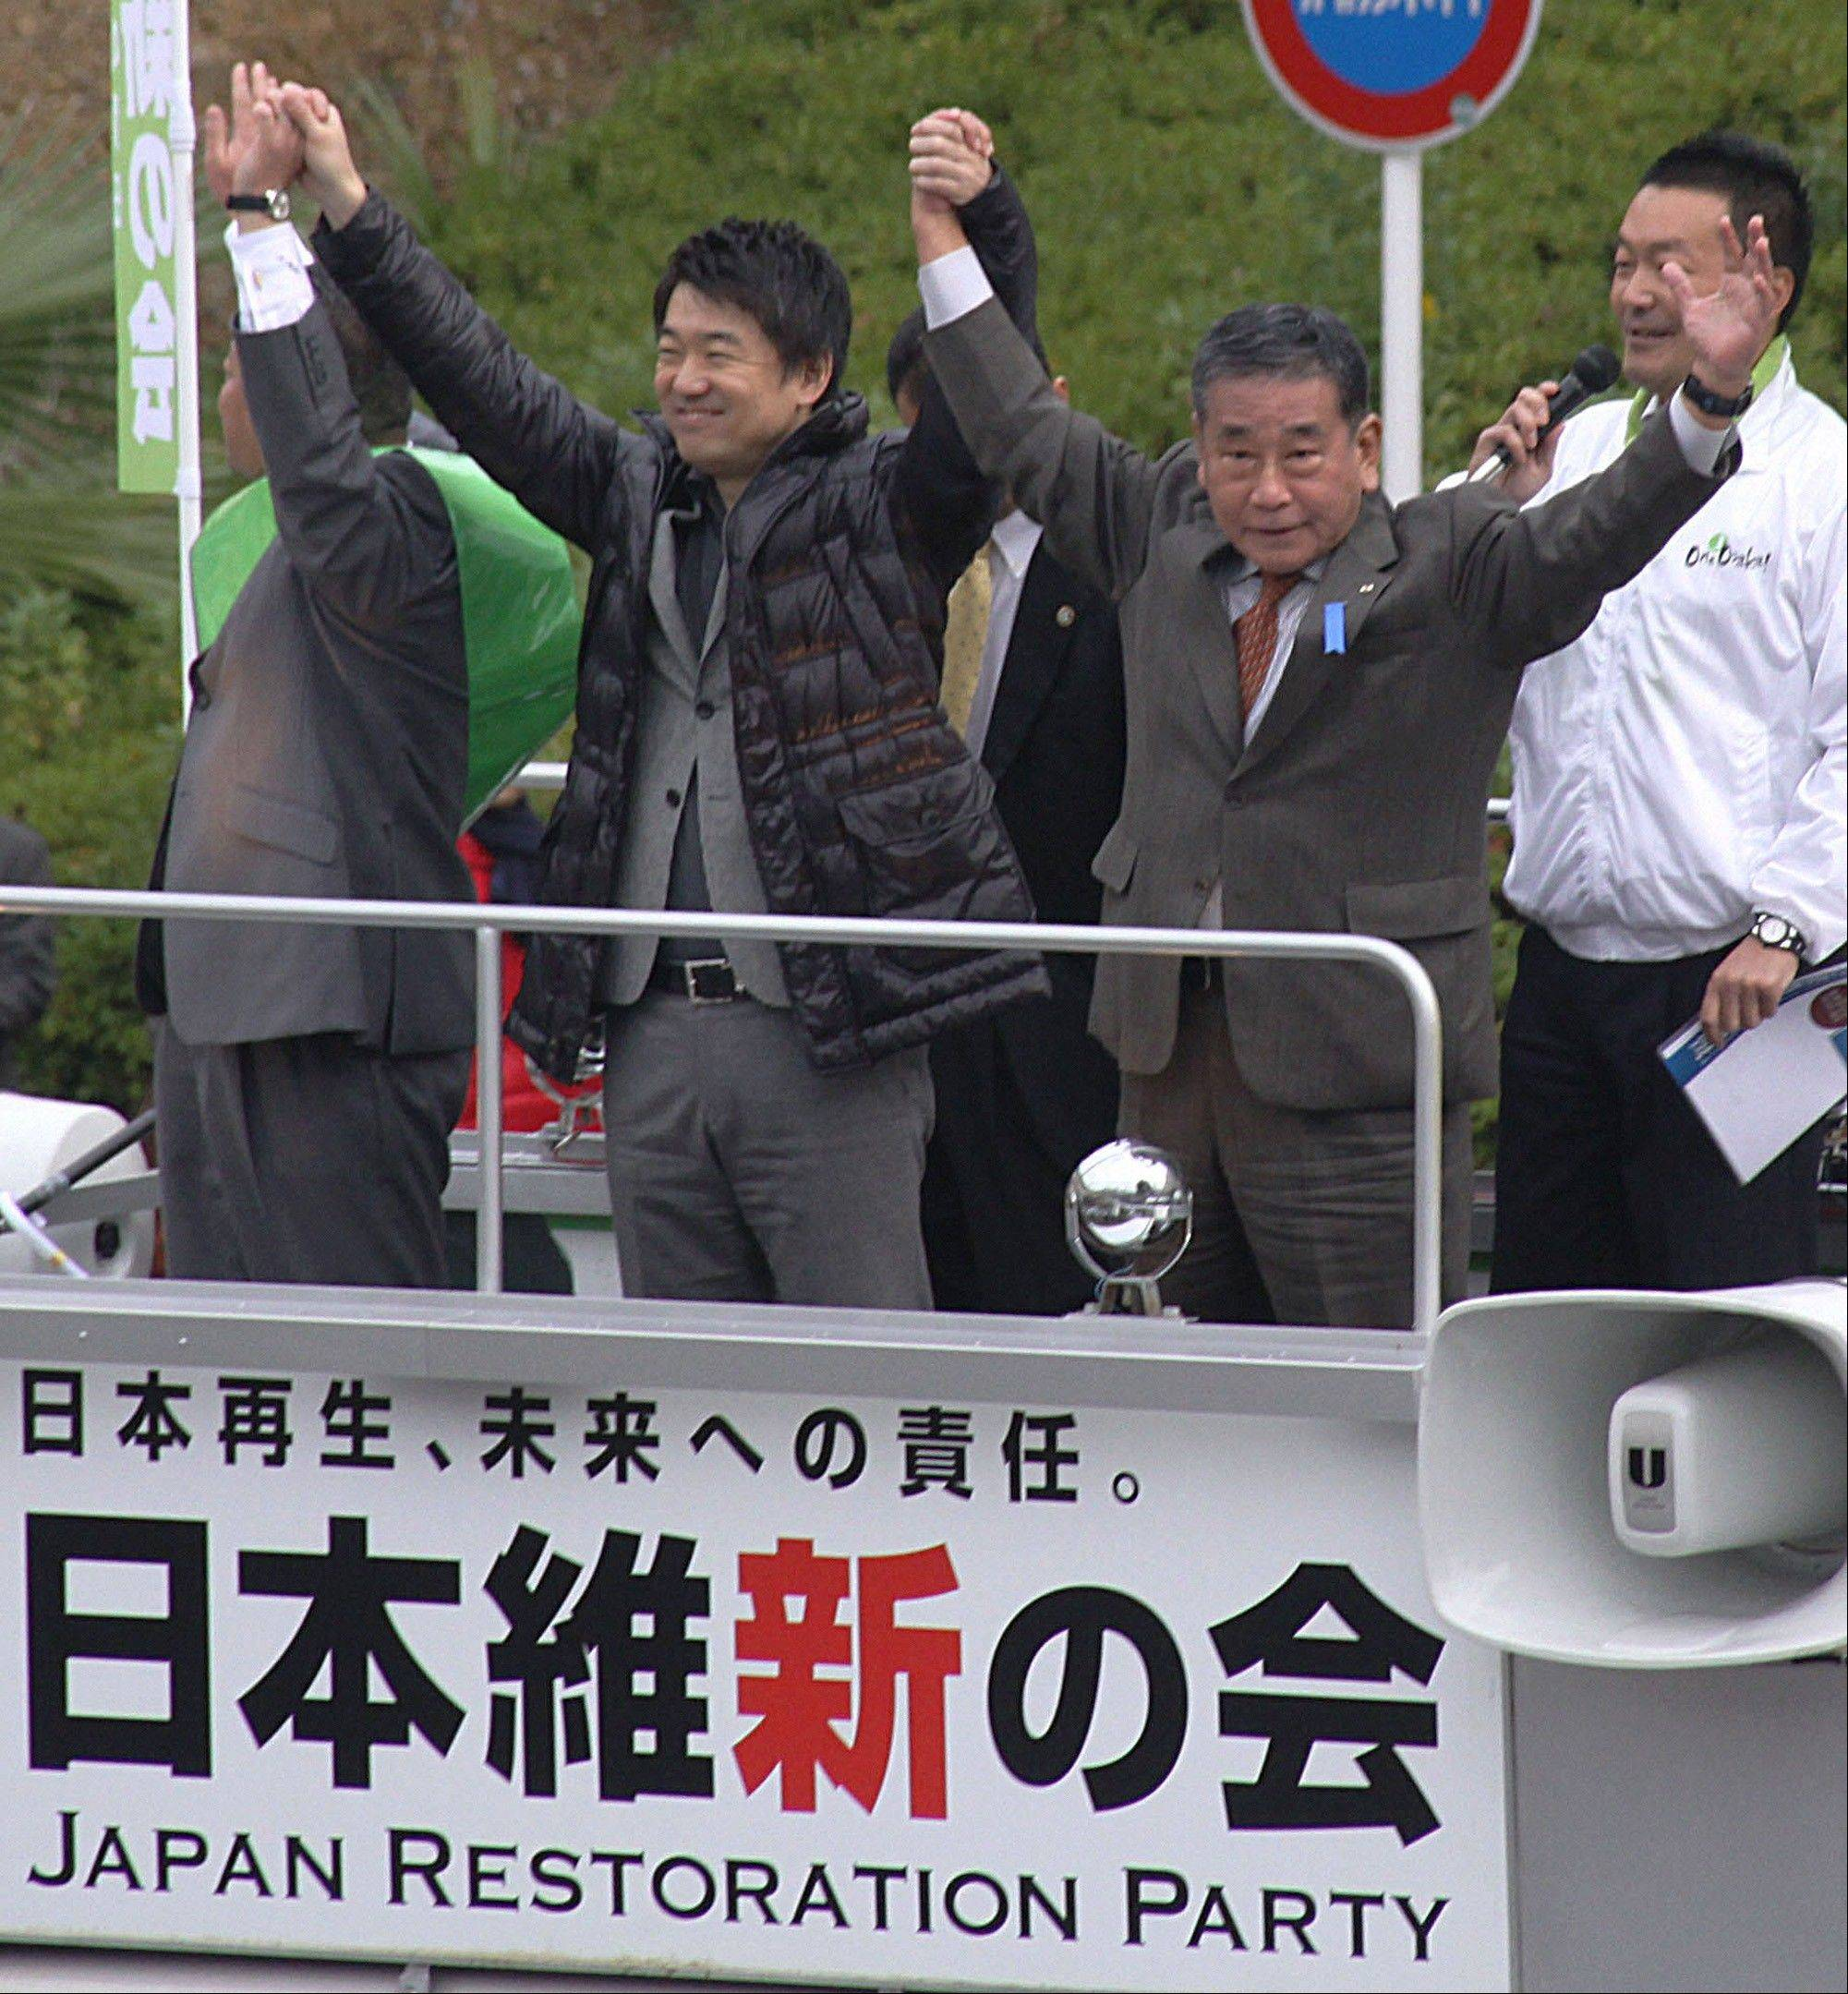 Osaka Mayor and co-leader of the Japan Restoration Party Toru Hashimoto, foreground center, along with Shingo Nishimura, foreground right, a former member of the House of Representatives, wave to supporters during their party's election campaign in Sakai, Osaka prefecture, western Japan. Hashimoto apologized after saying, and later tweeting, that sex slavery by Japan's Imperial Army before and during World War II was a 'necessary' wartime evil and suggesting that the U.S. military patronize adult entertainment to help reduce sex crimes committed by American troops.